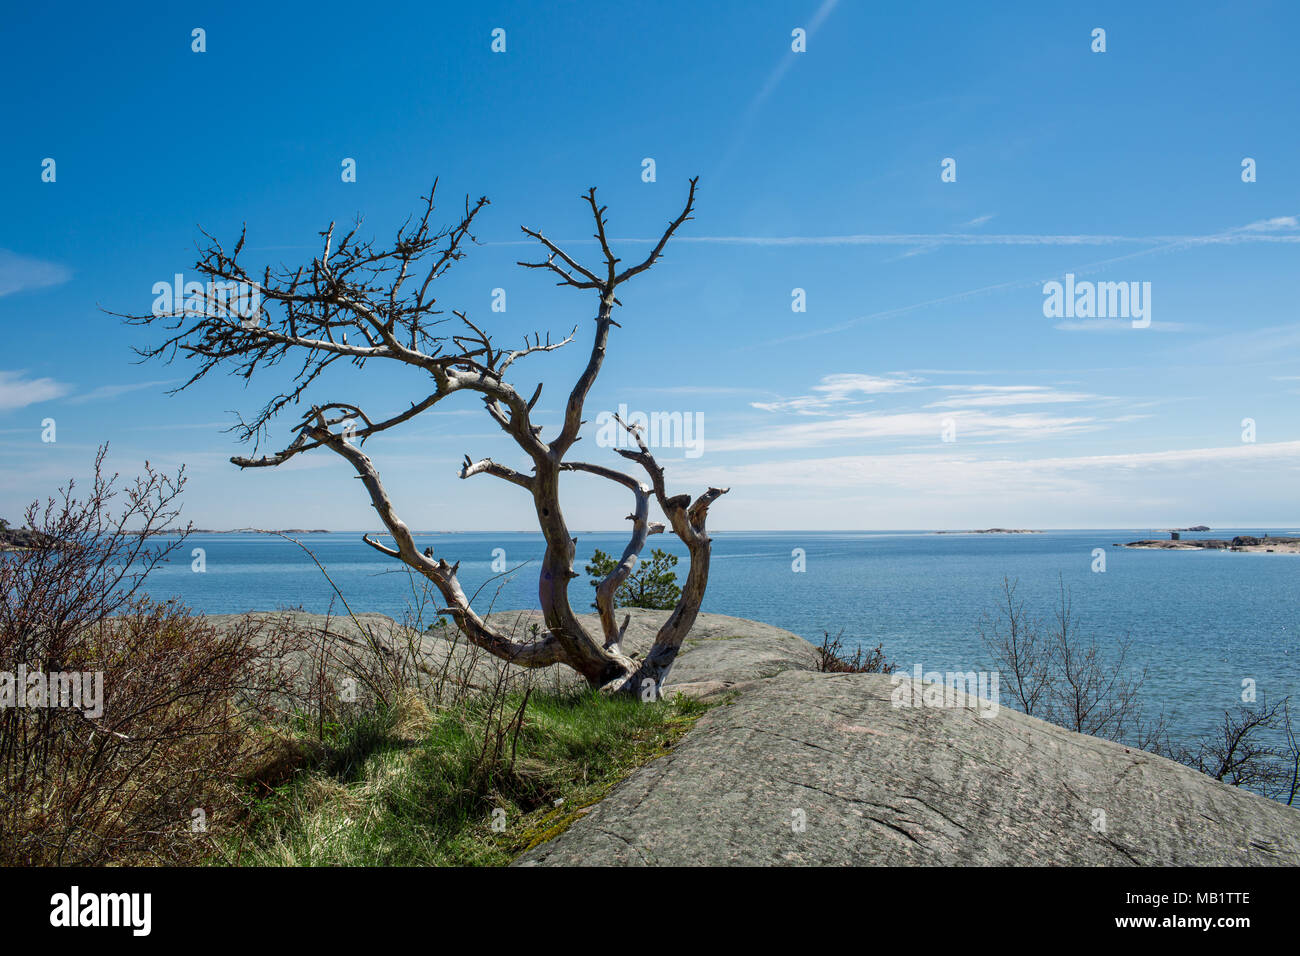 Finland,Hanko Early Summer. Scenic view of Baltic sea, and blue sky, Lonely tree on the rock. Peaceful Finnish landscape. - Stock Image